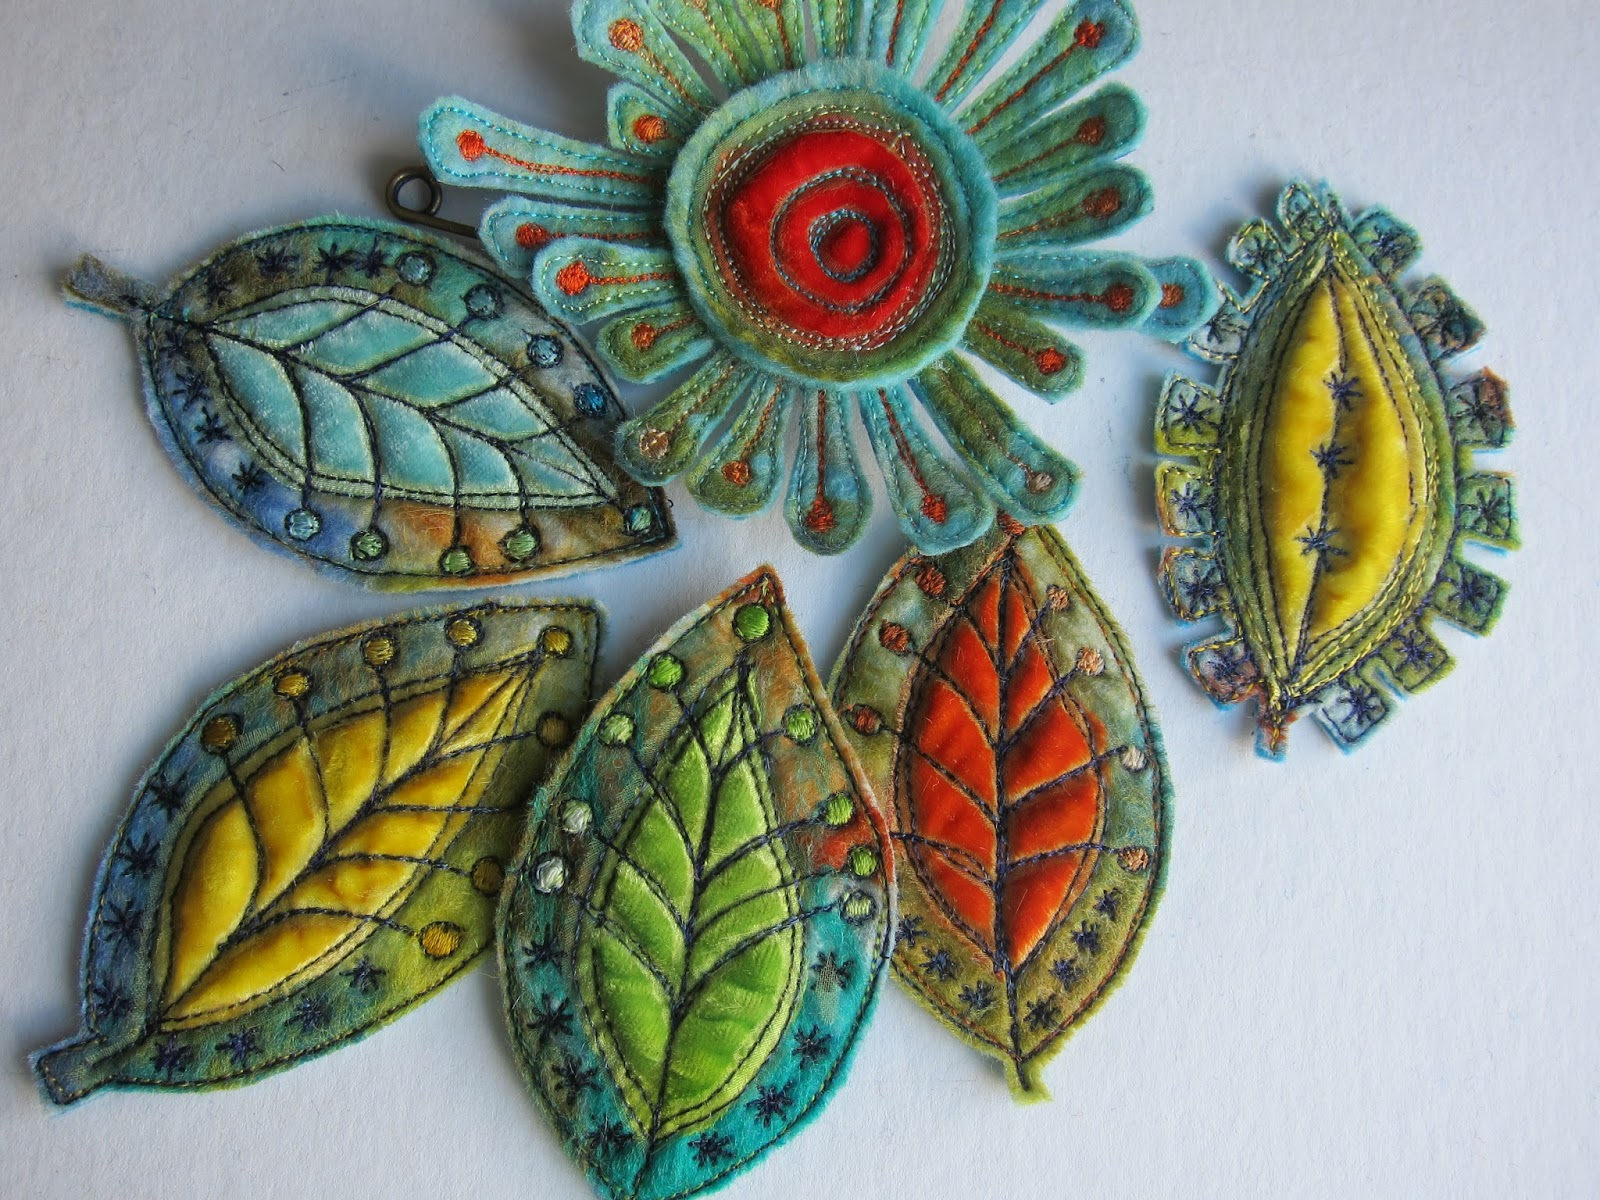 Machine Embroidery: Know More About It - Bored Art